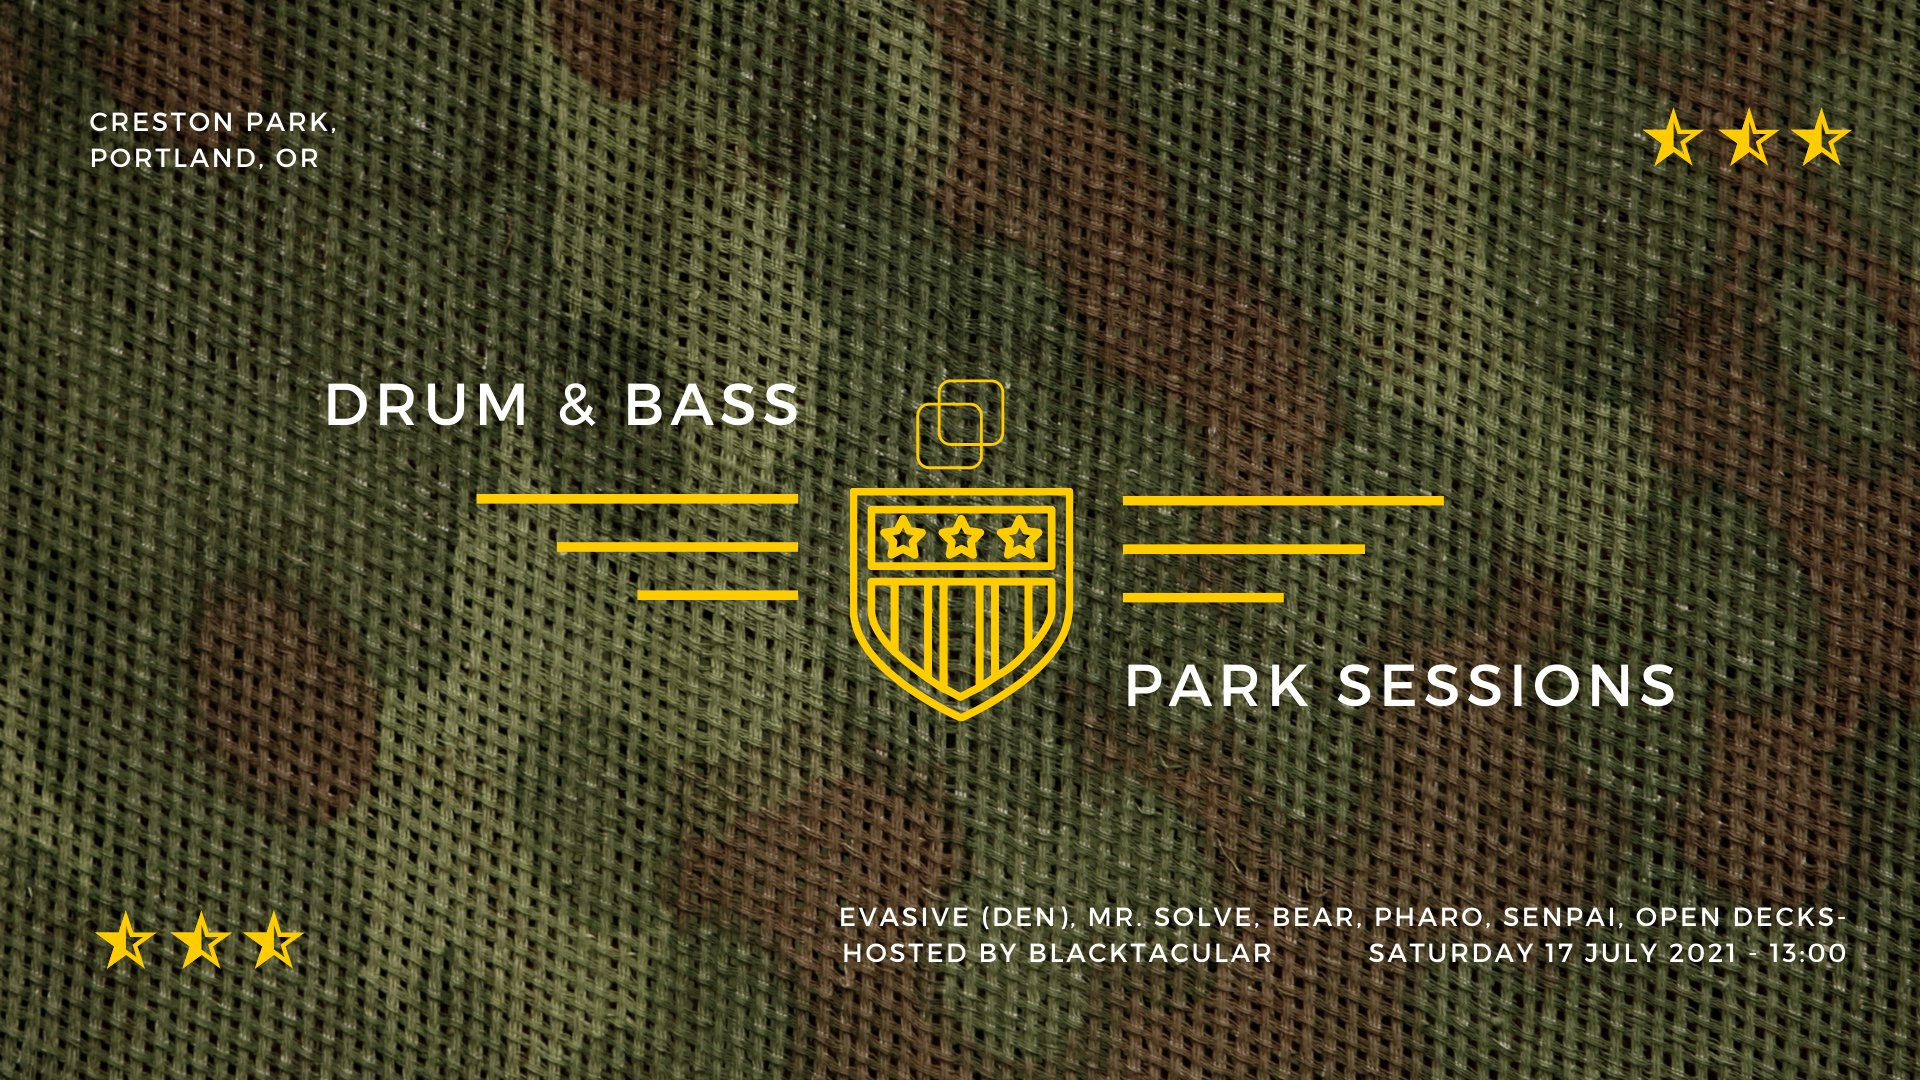 dnb in the park!!! July 17